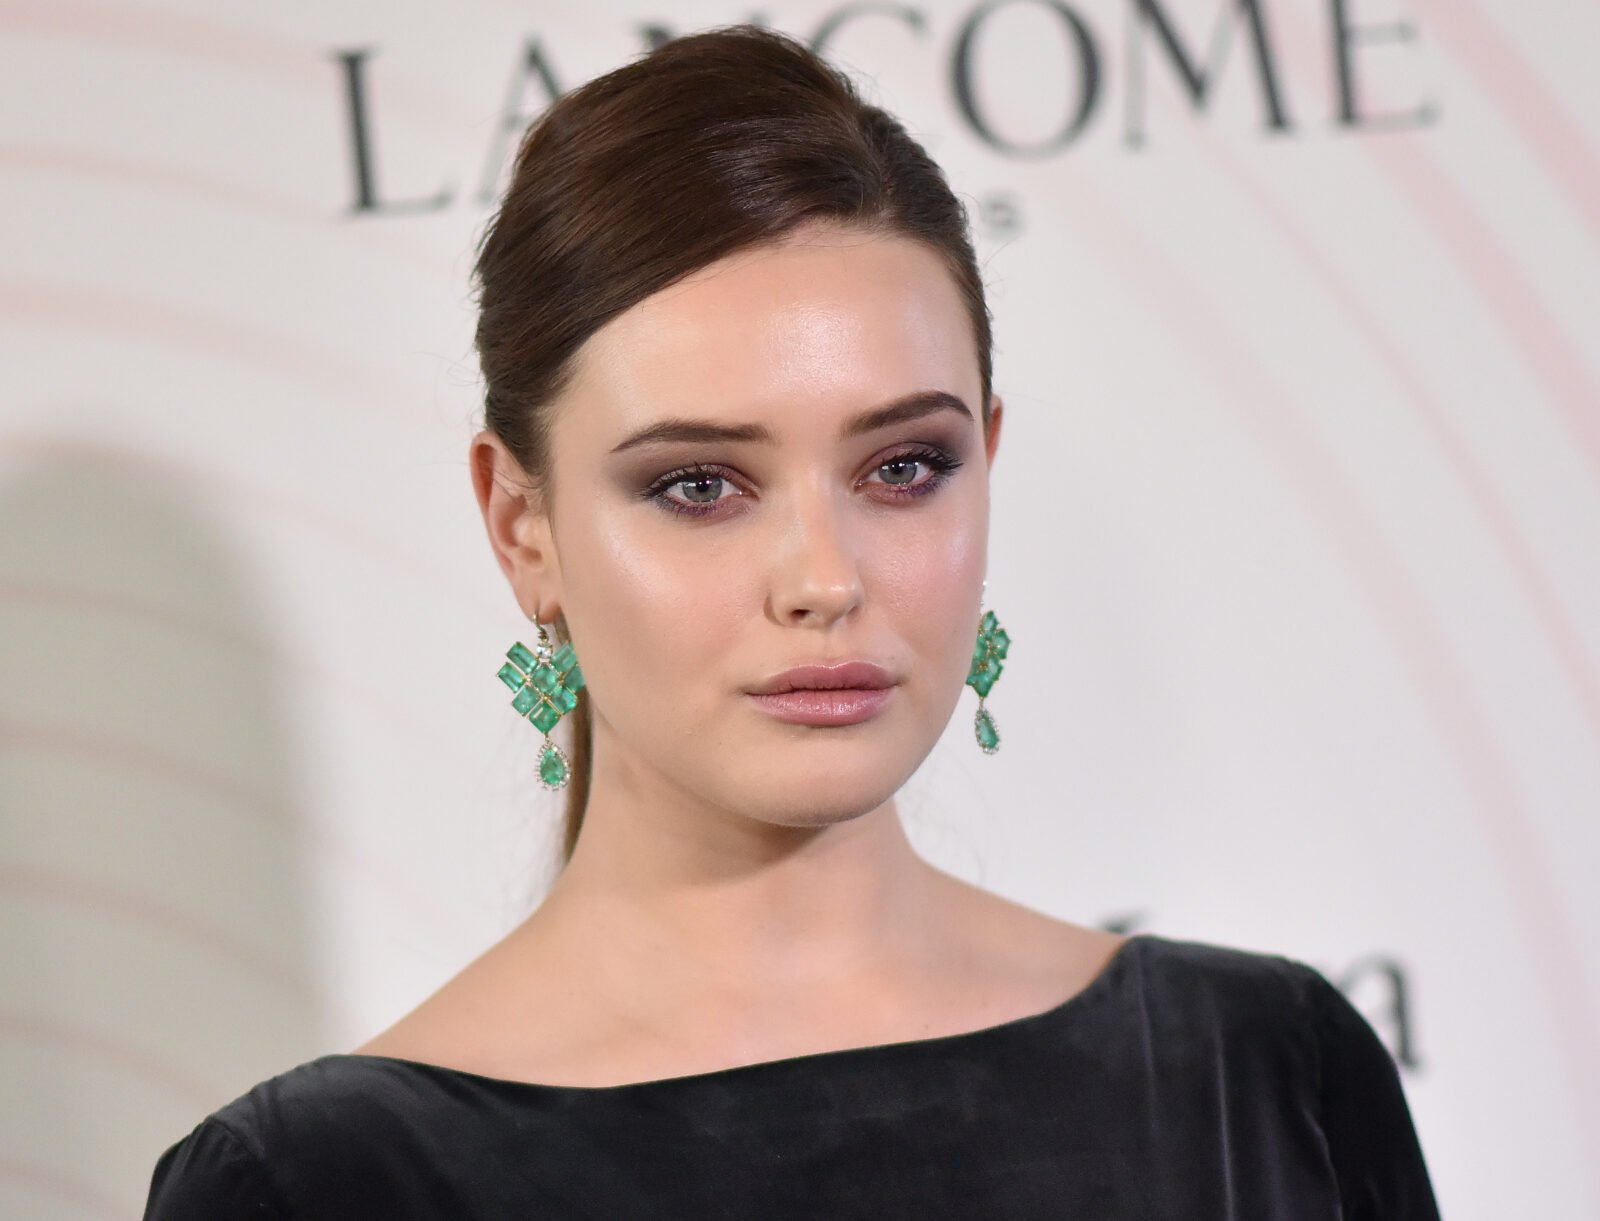 Katherine Langford - Who is She?